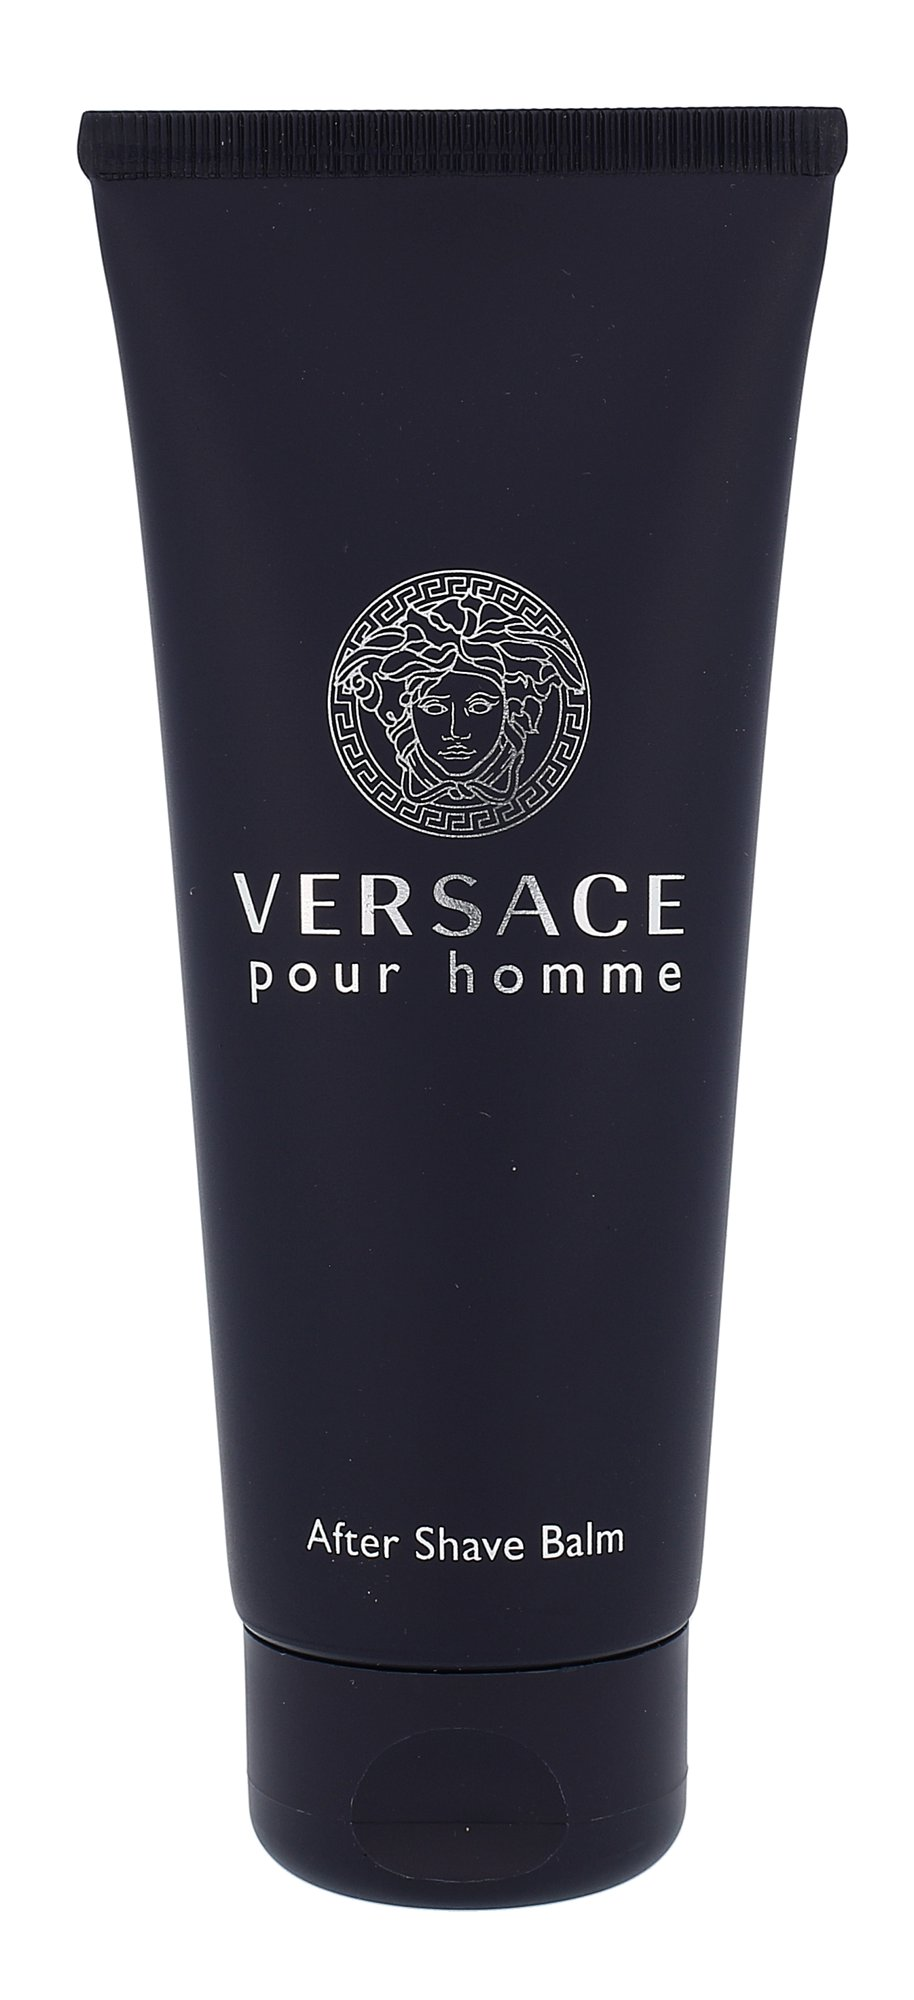 Versace Pour Homme, After shave balm 100ml